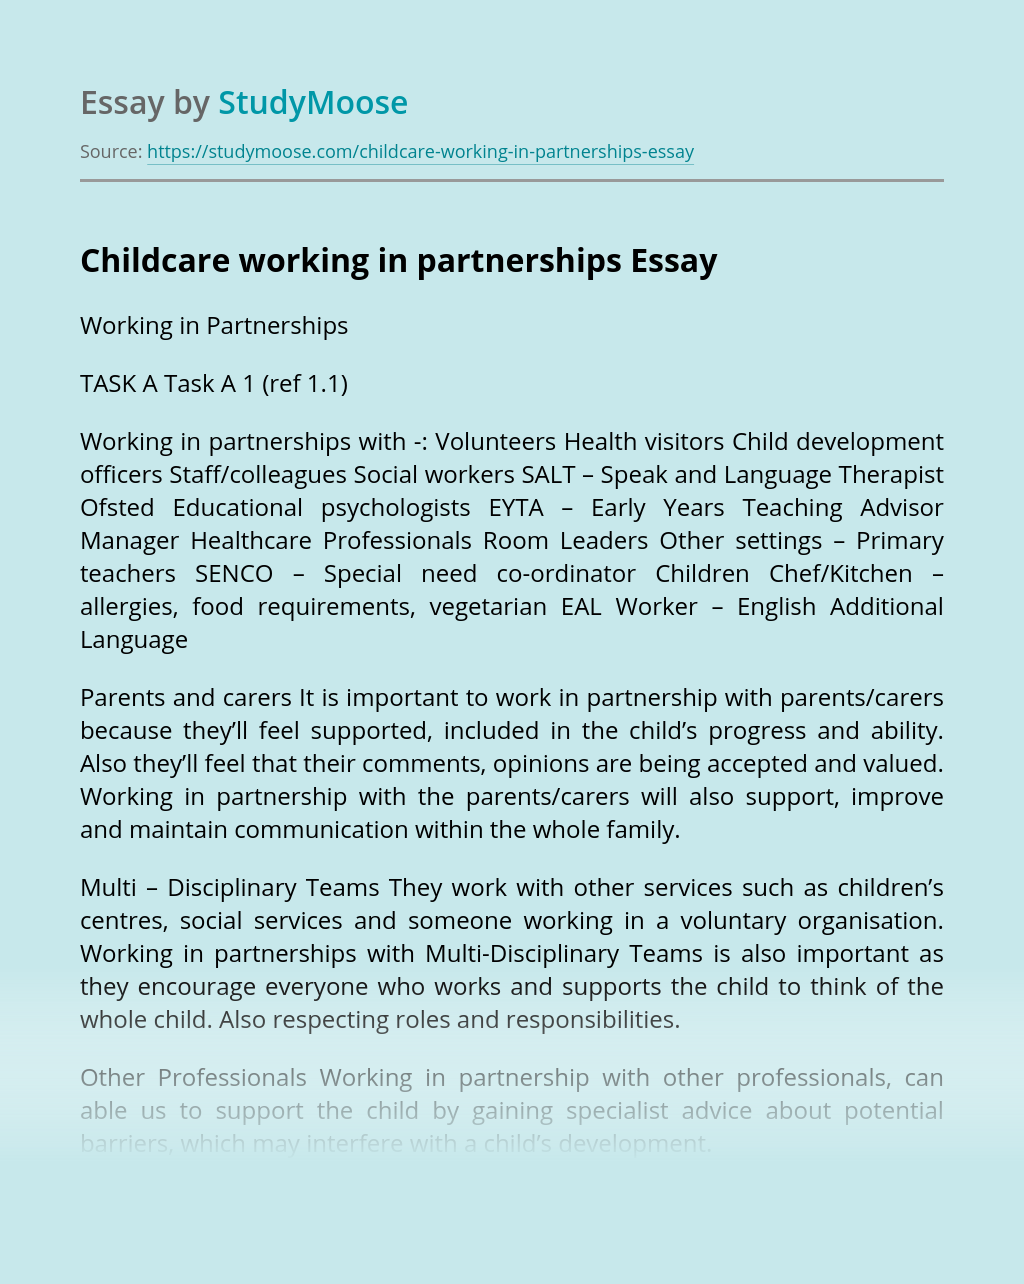 Childcare working in partnerships